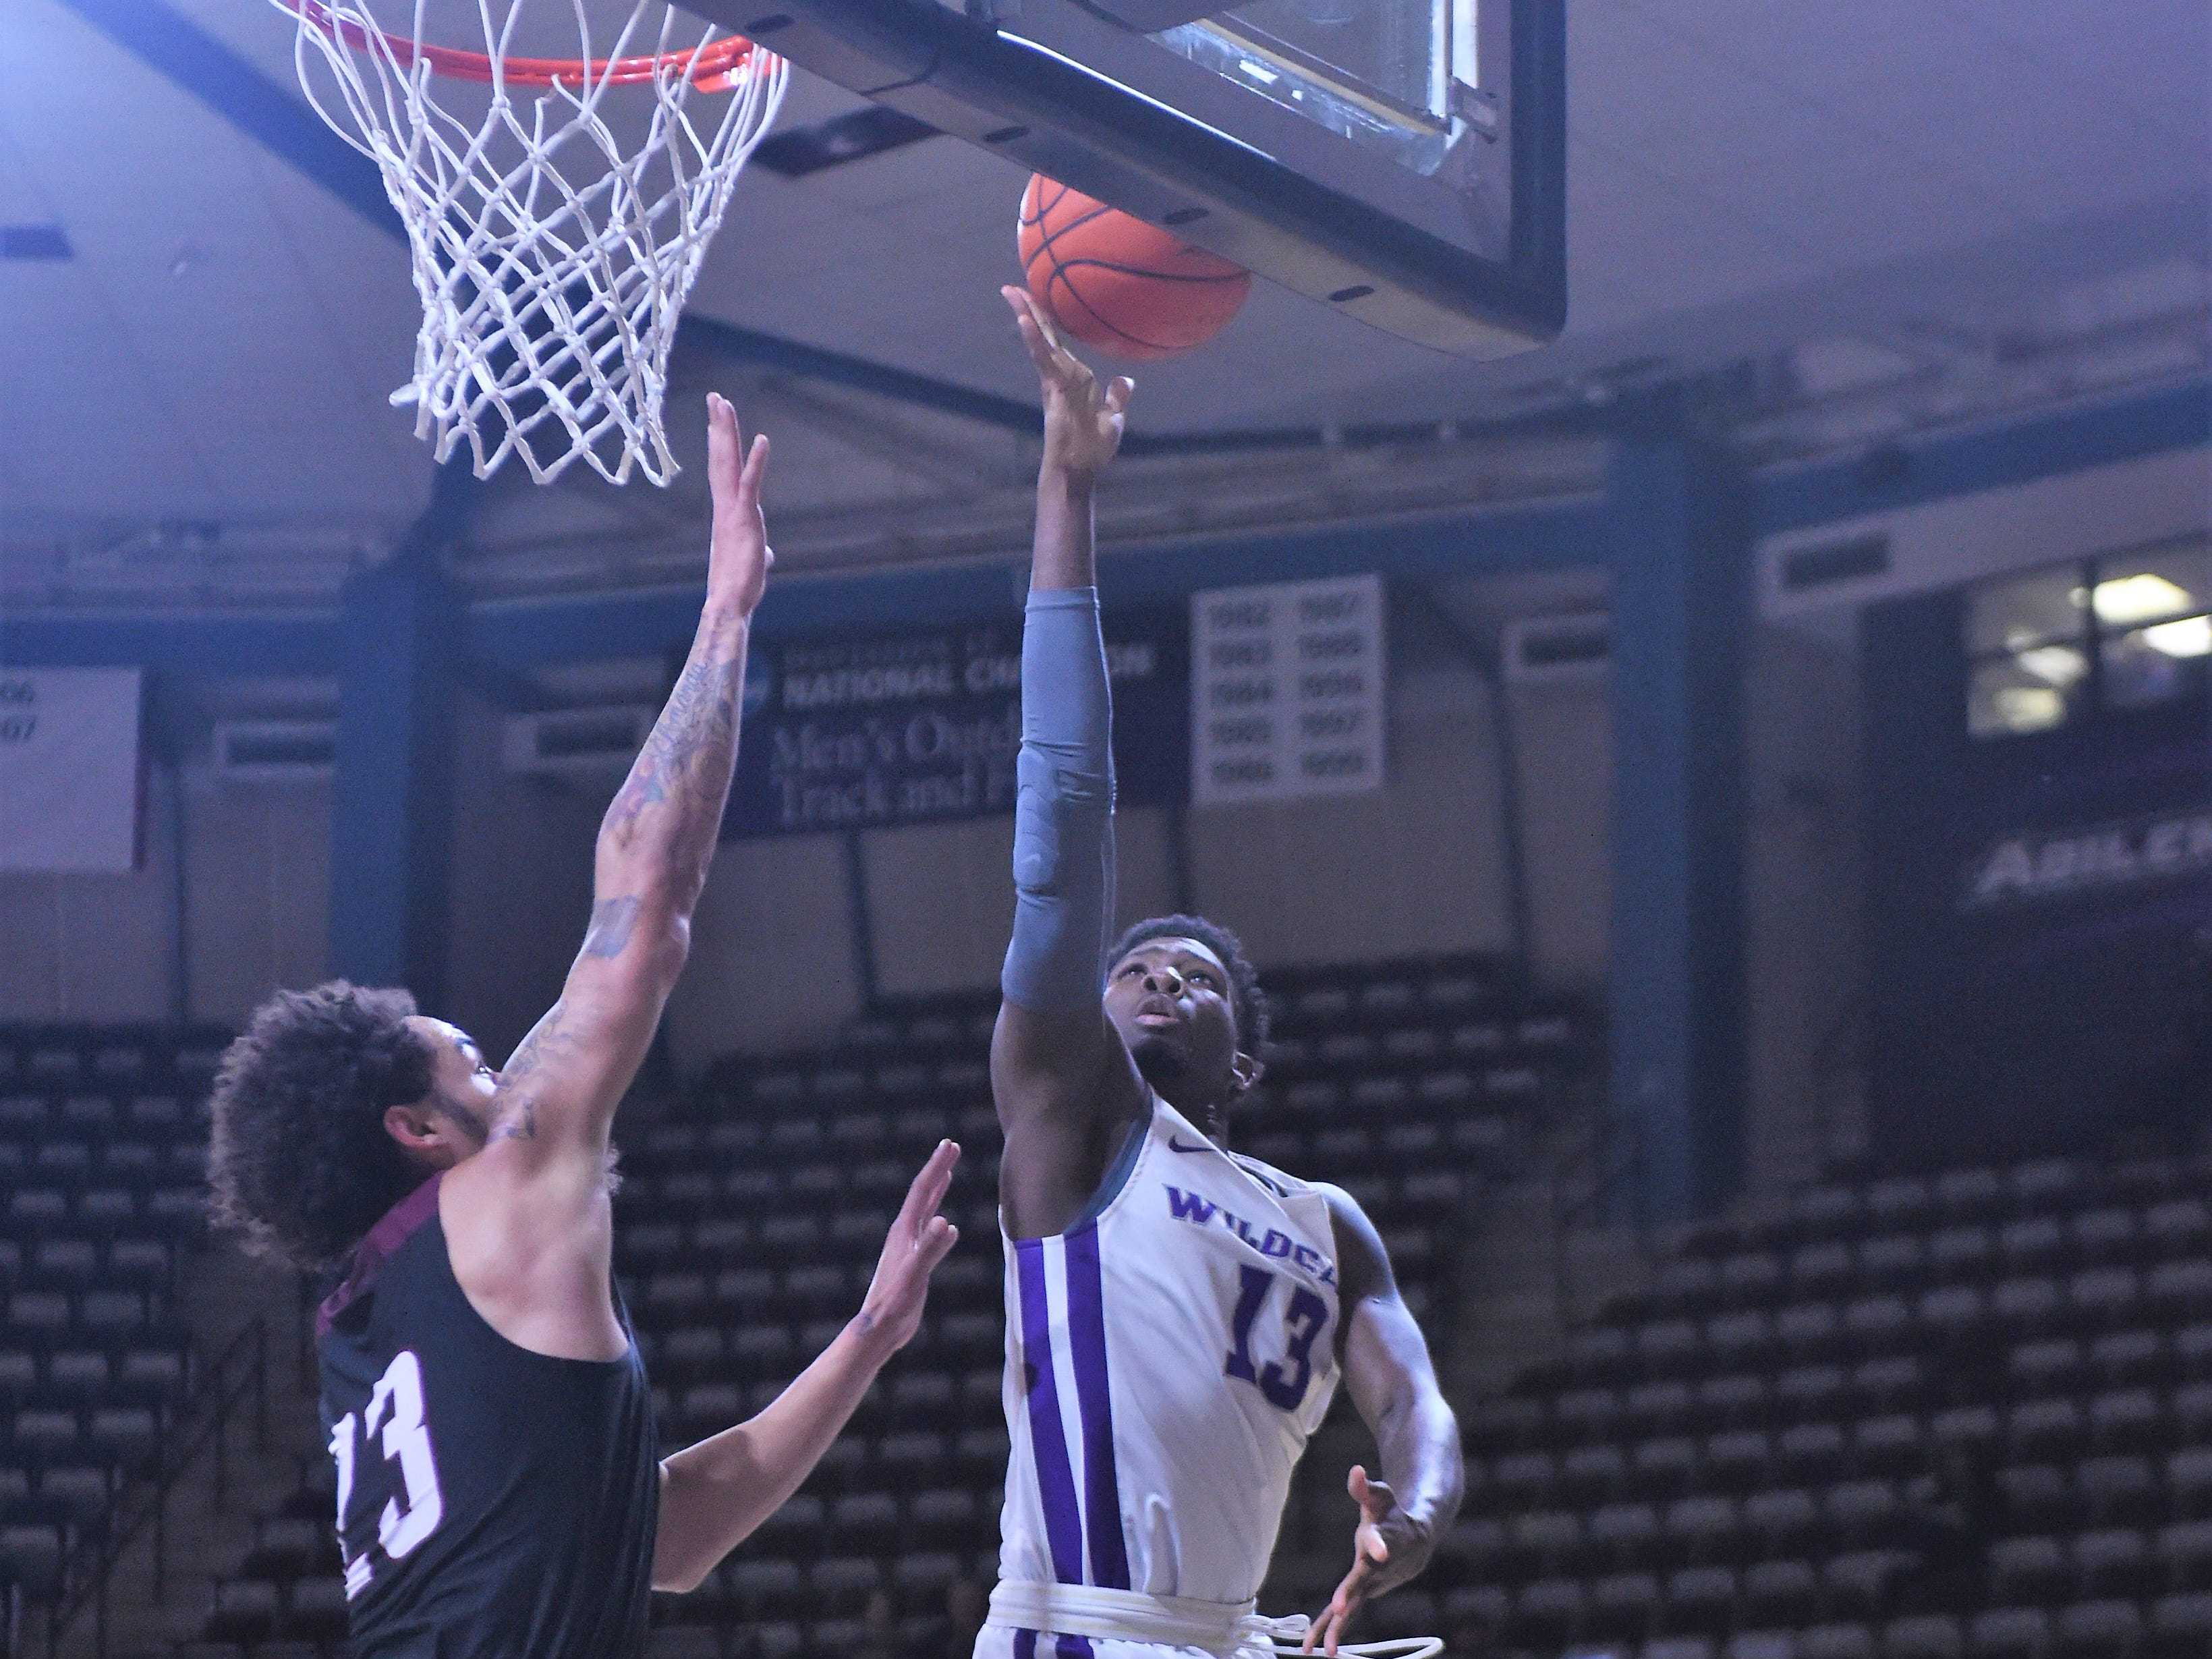 ACU's B.J. Maxwell (13) shoots a lay-up over McMurry's Jordan Jackson (23) during Saturday's game at Moody Coliseum.